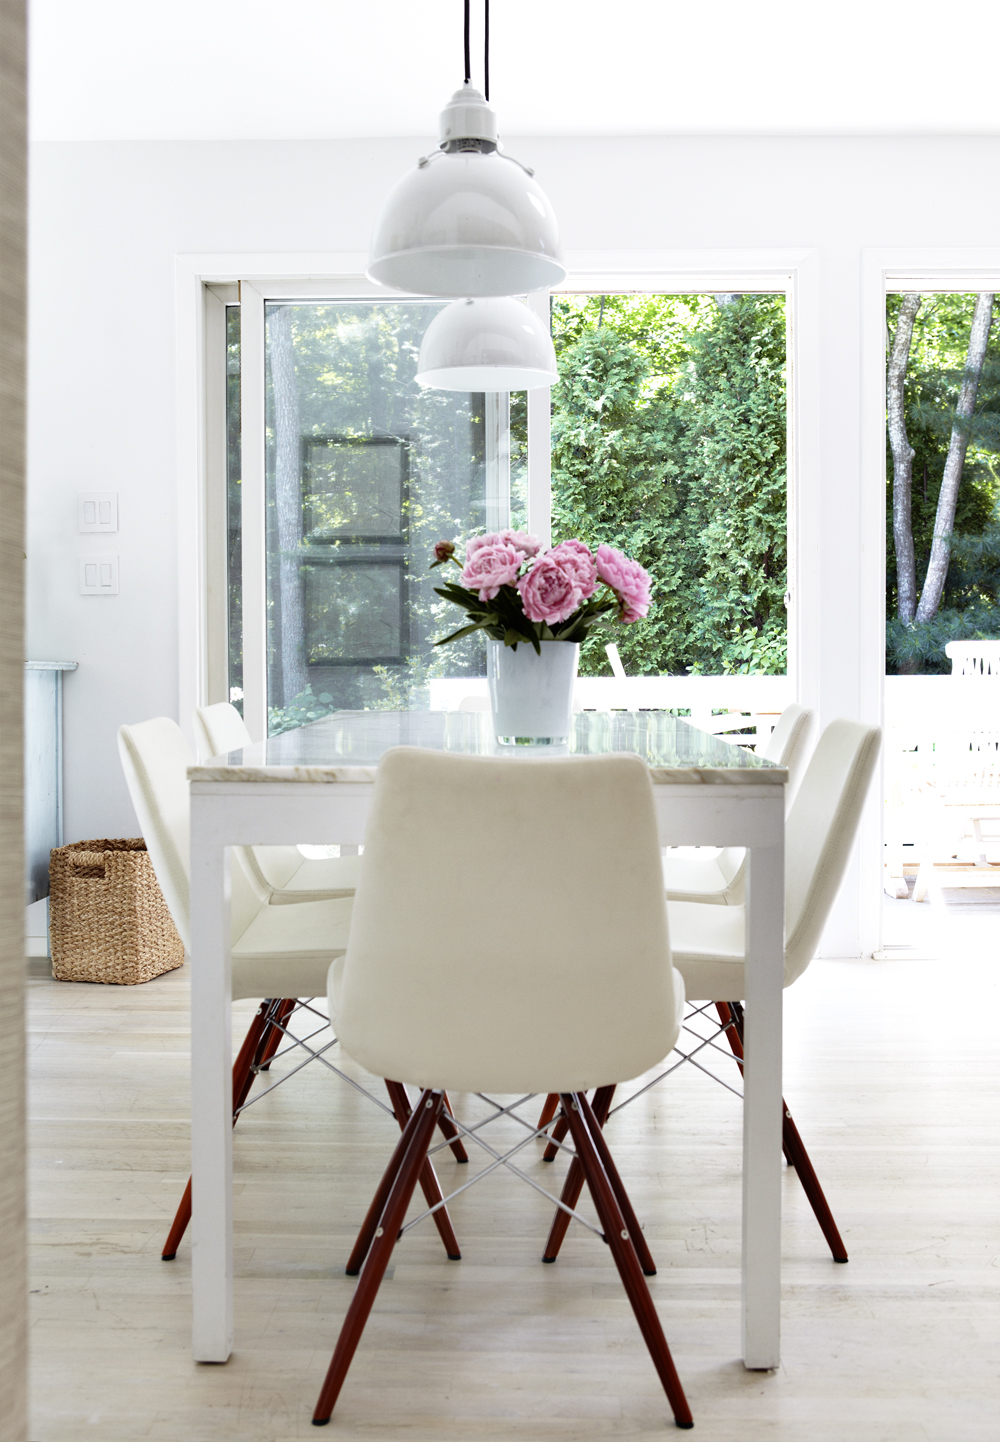 Nothing Like Simple Dining Room With Wonderful Garden Views I Like